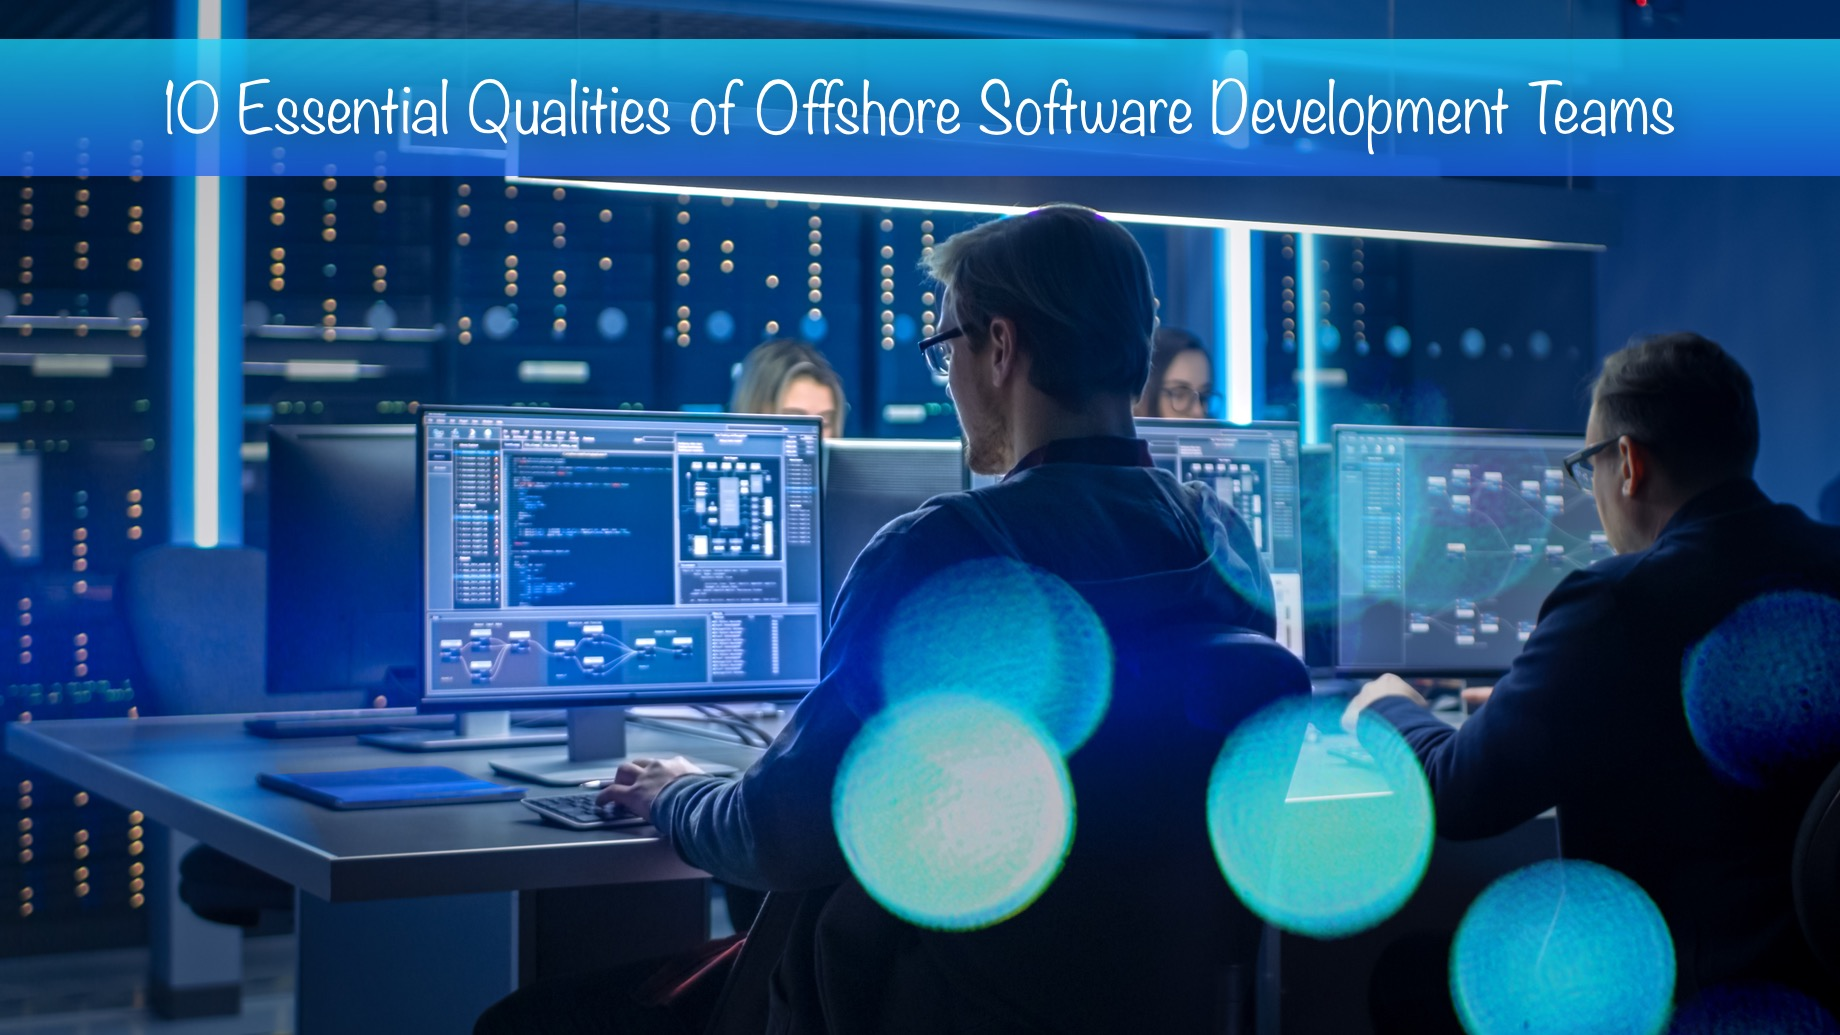 10 Essential Qualities of Offshore Software Development Teams